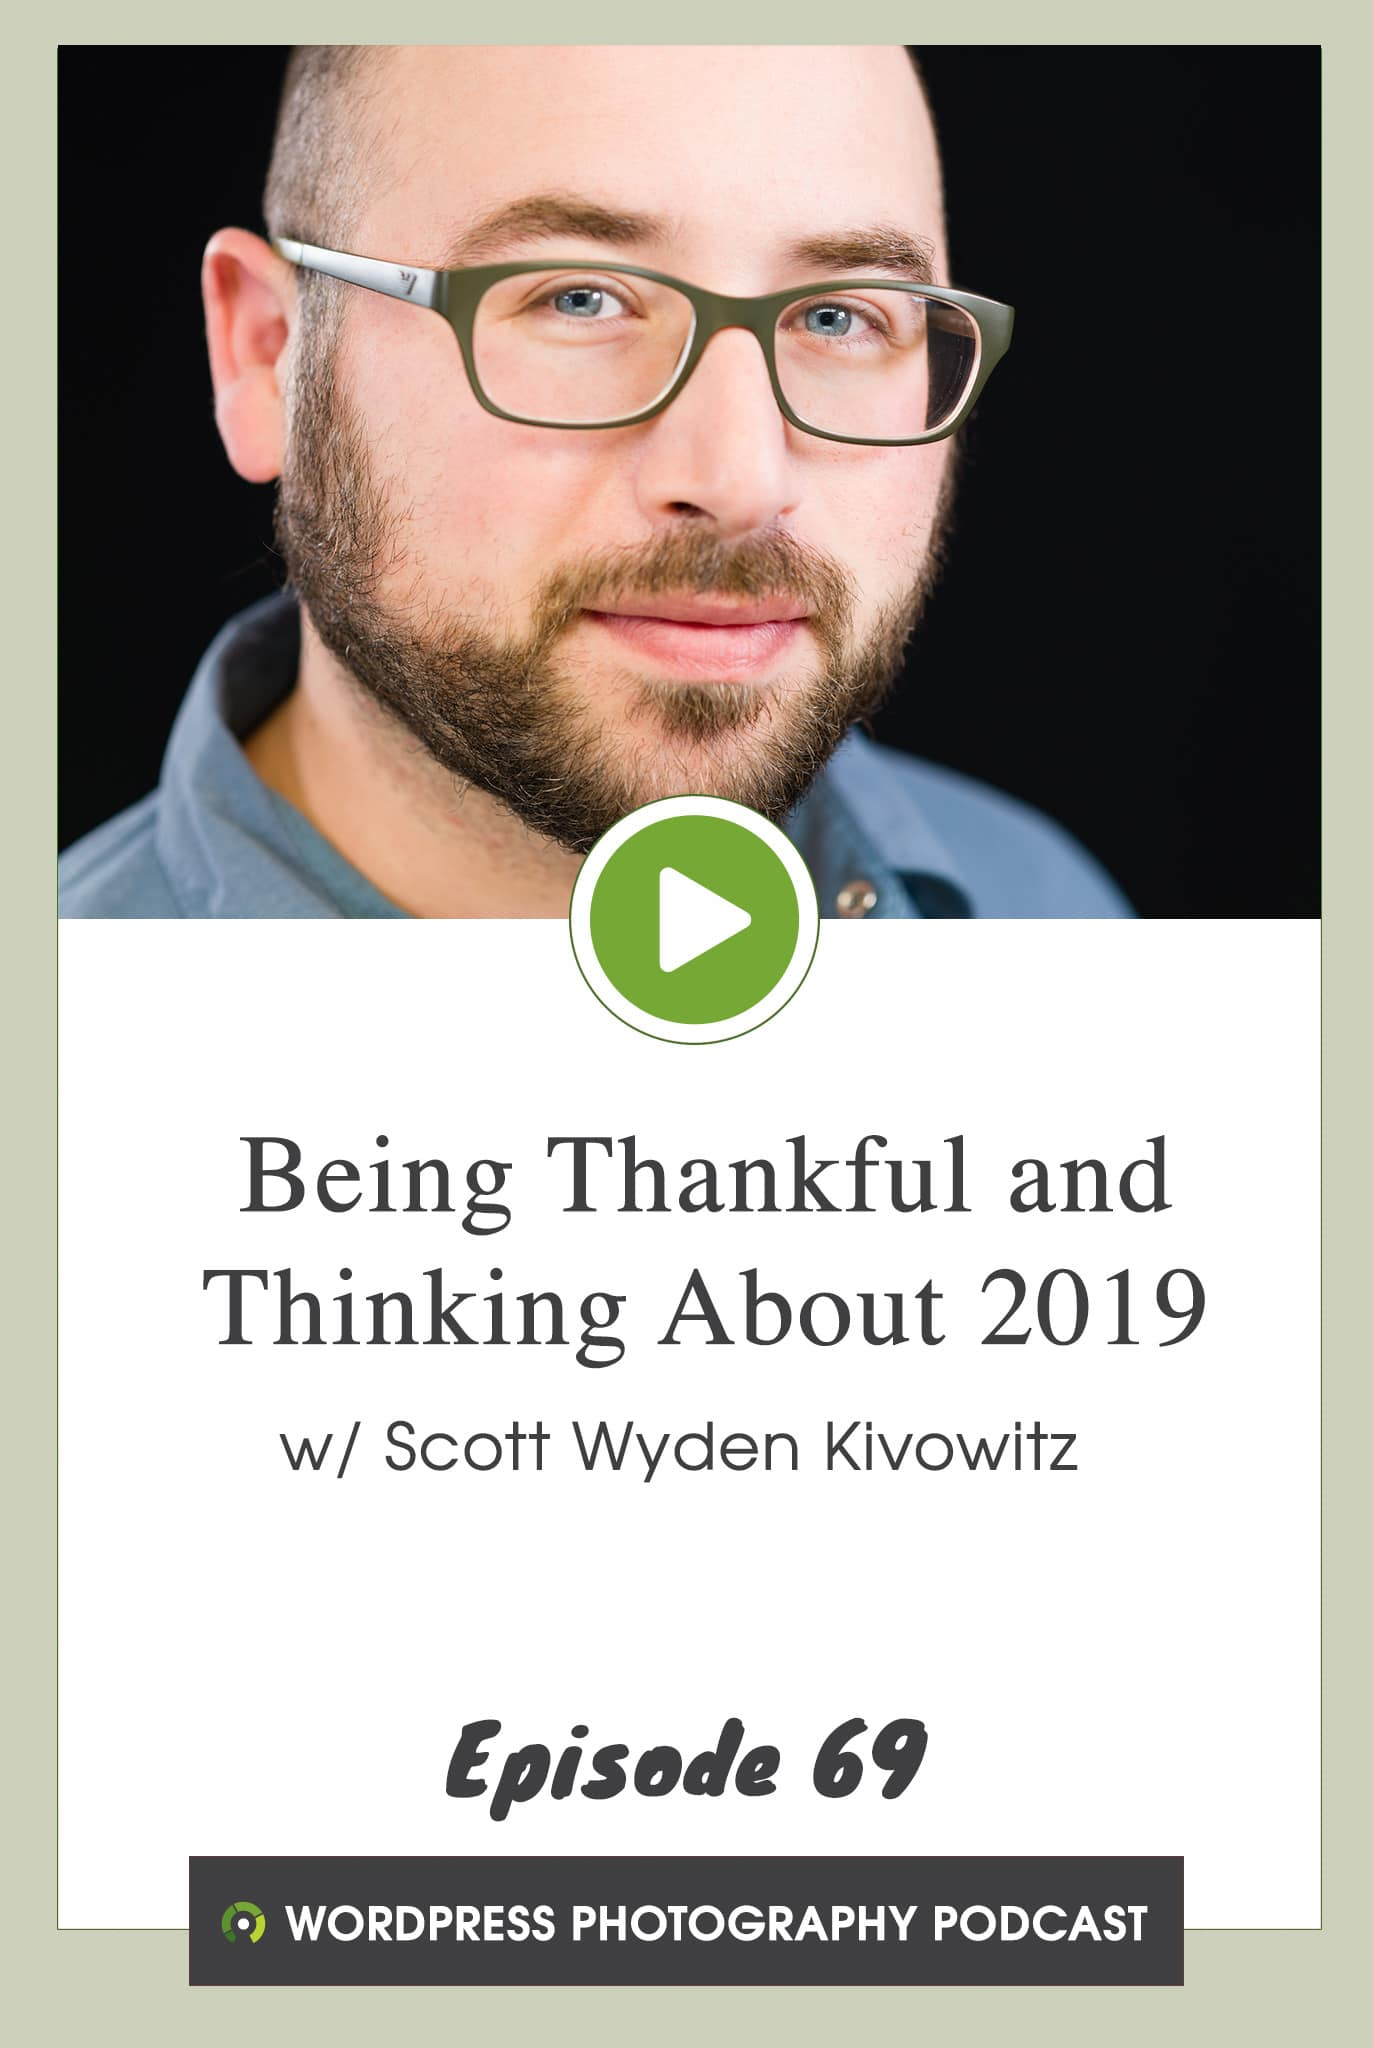 Episode 69 – Being Thankful and Thinking About 2019